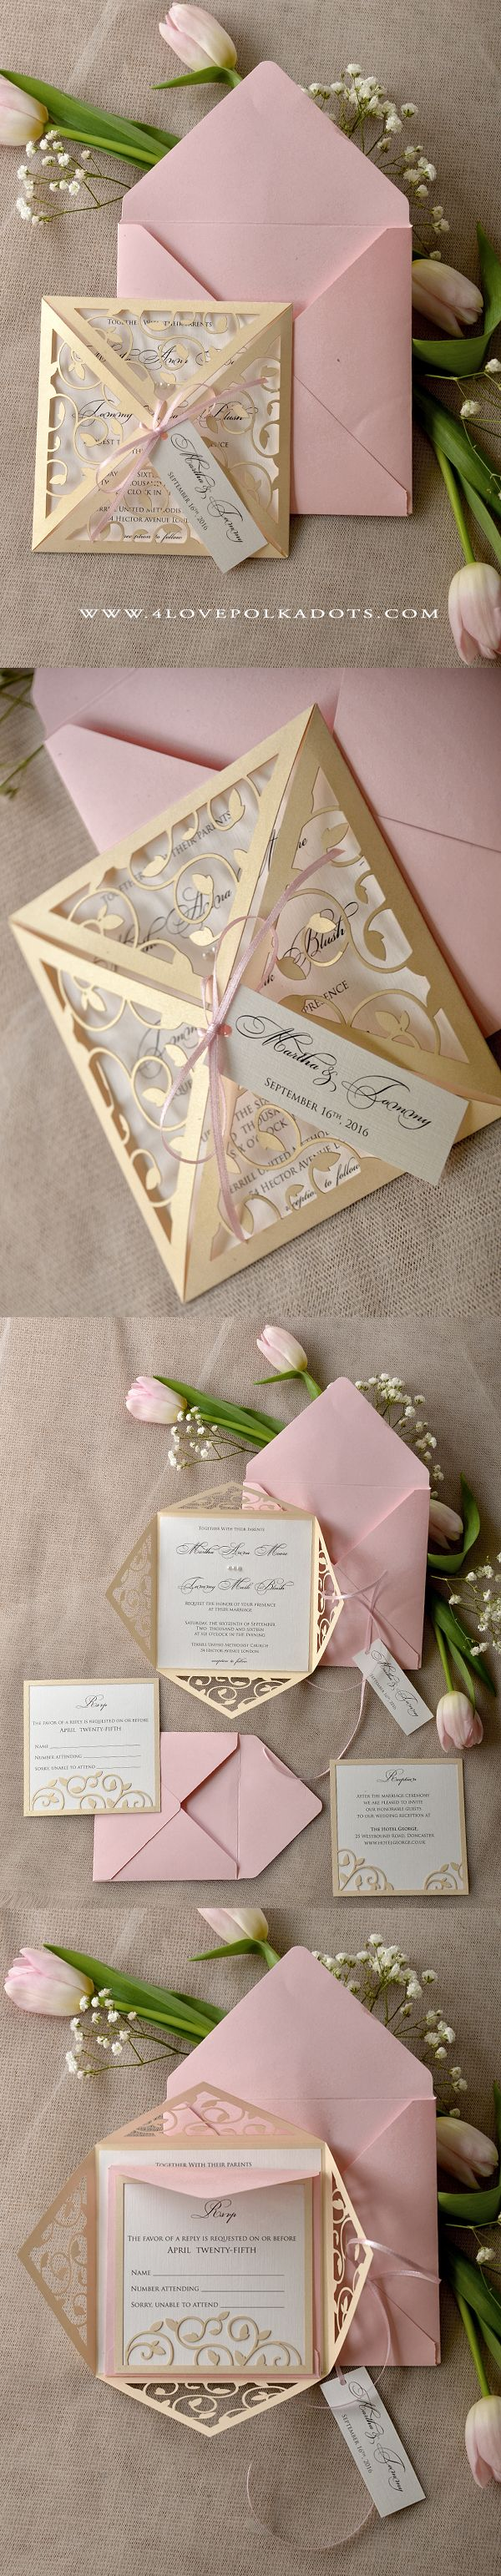 Blush Wedding Invitation - Laser Cut Design #weddingideas #summerwedding #blush